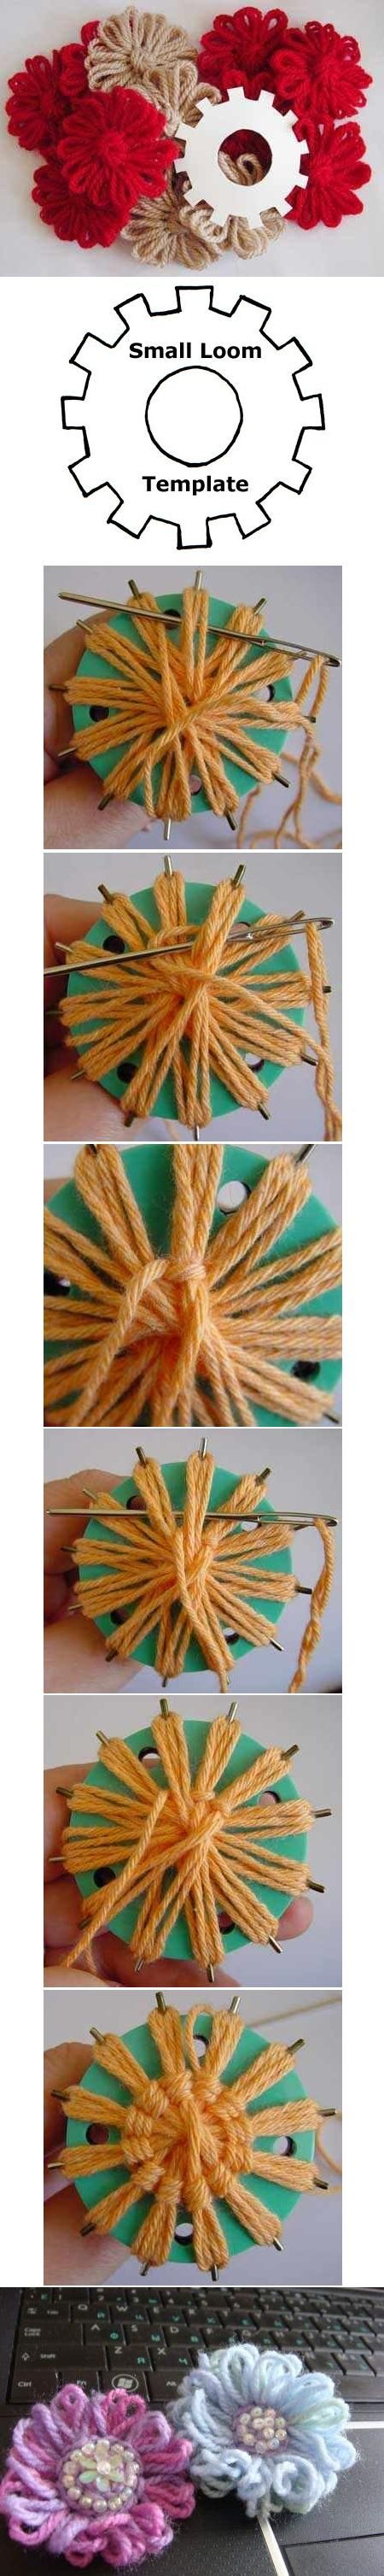 OMGOODNESS!  I made SO many of these way back in 6th grade!  Sold them for a quarter - entire school had them in their hair, on clothes, etc!  Great memory.  *beth*